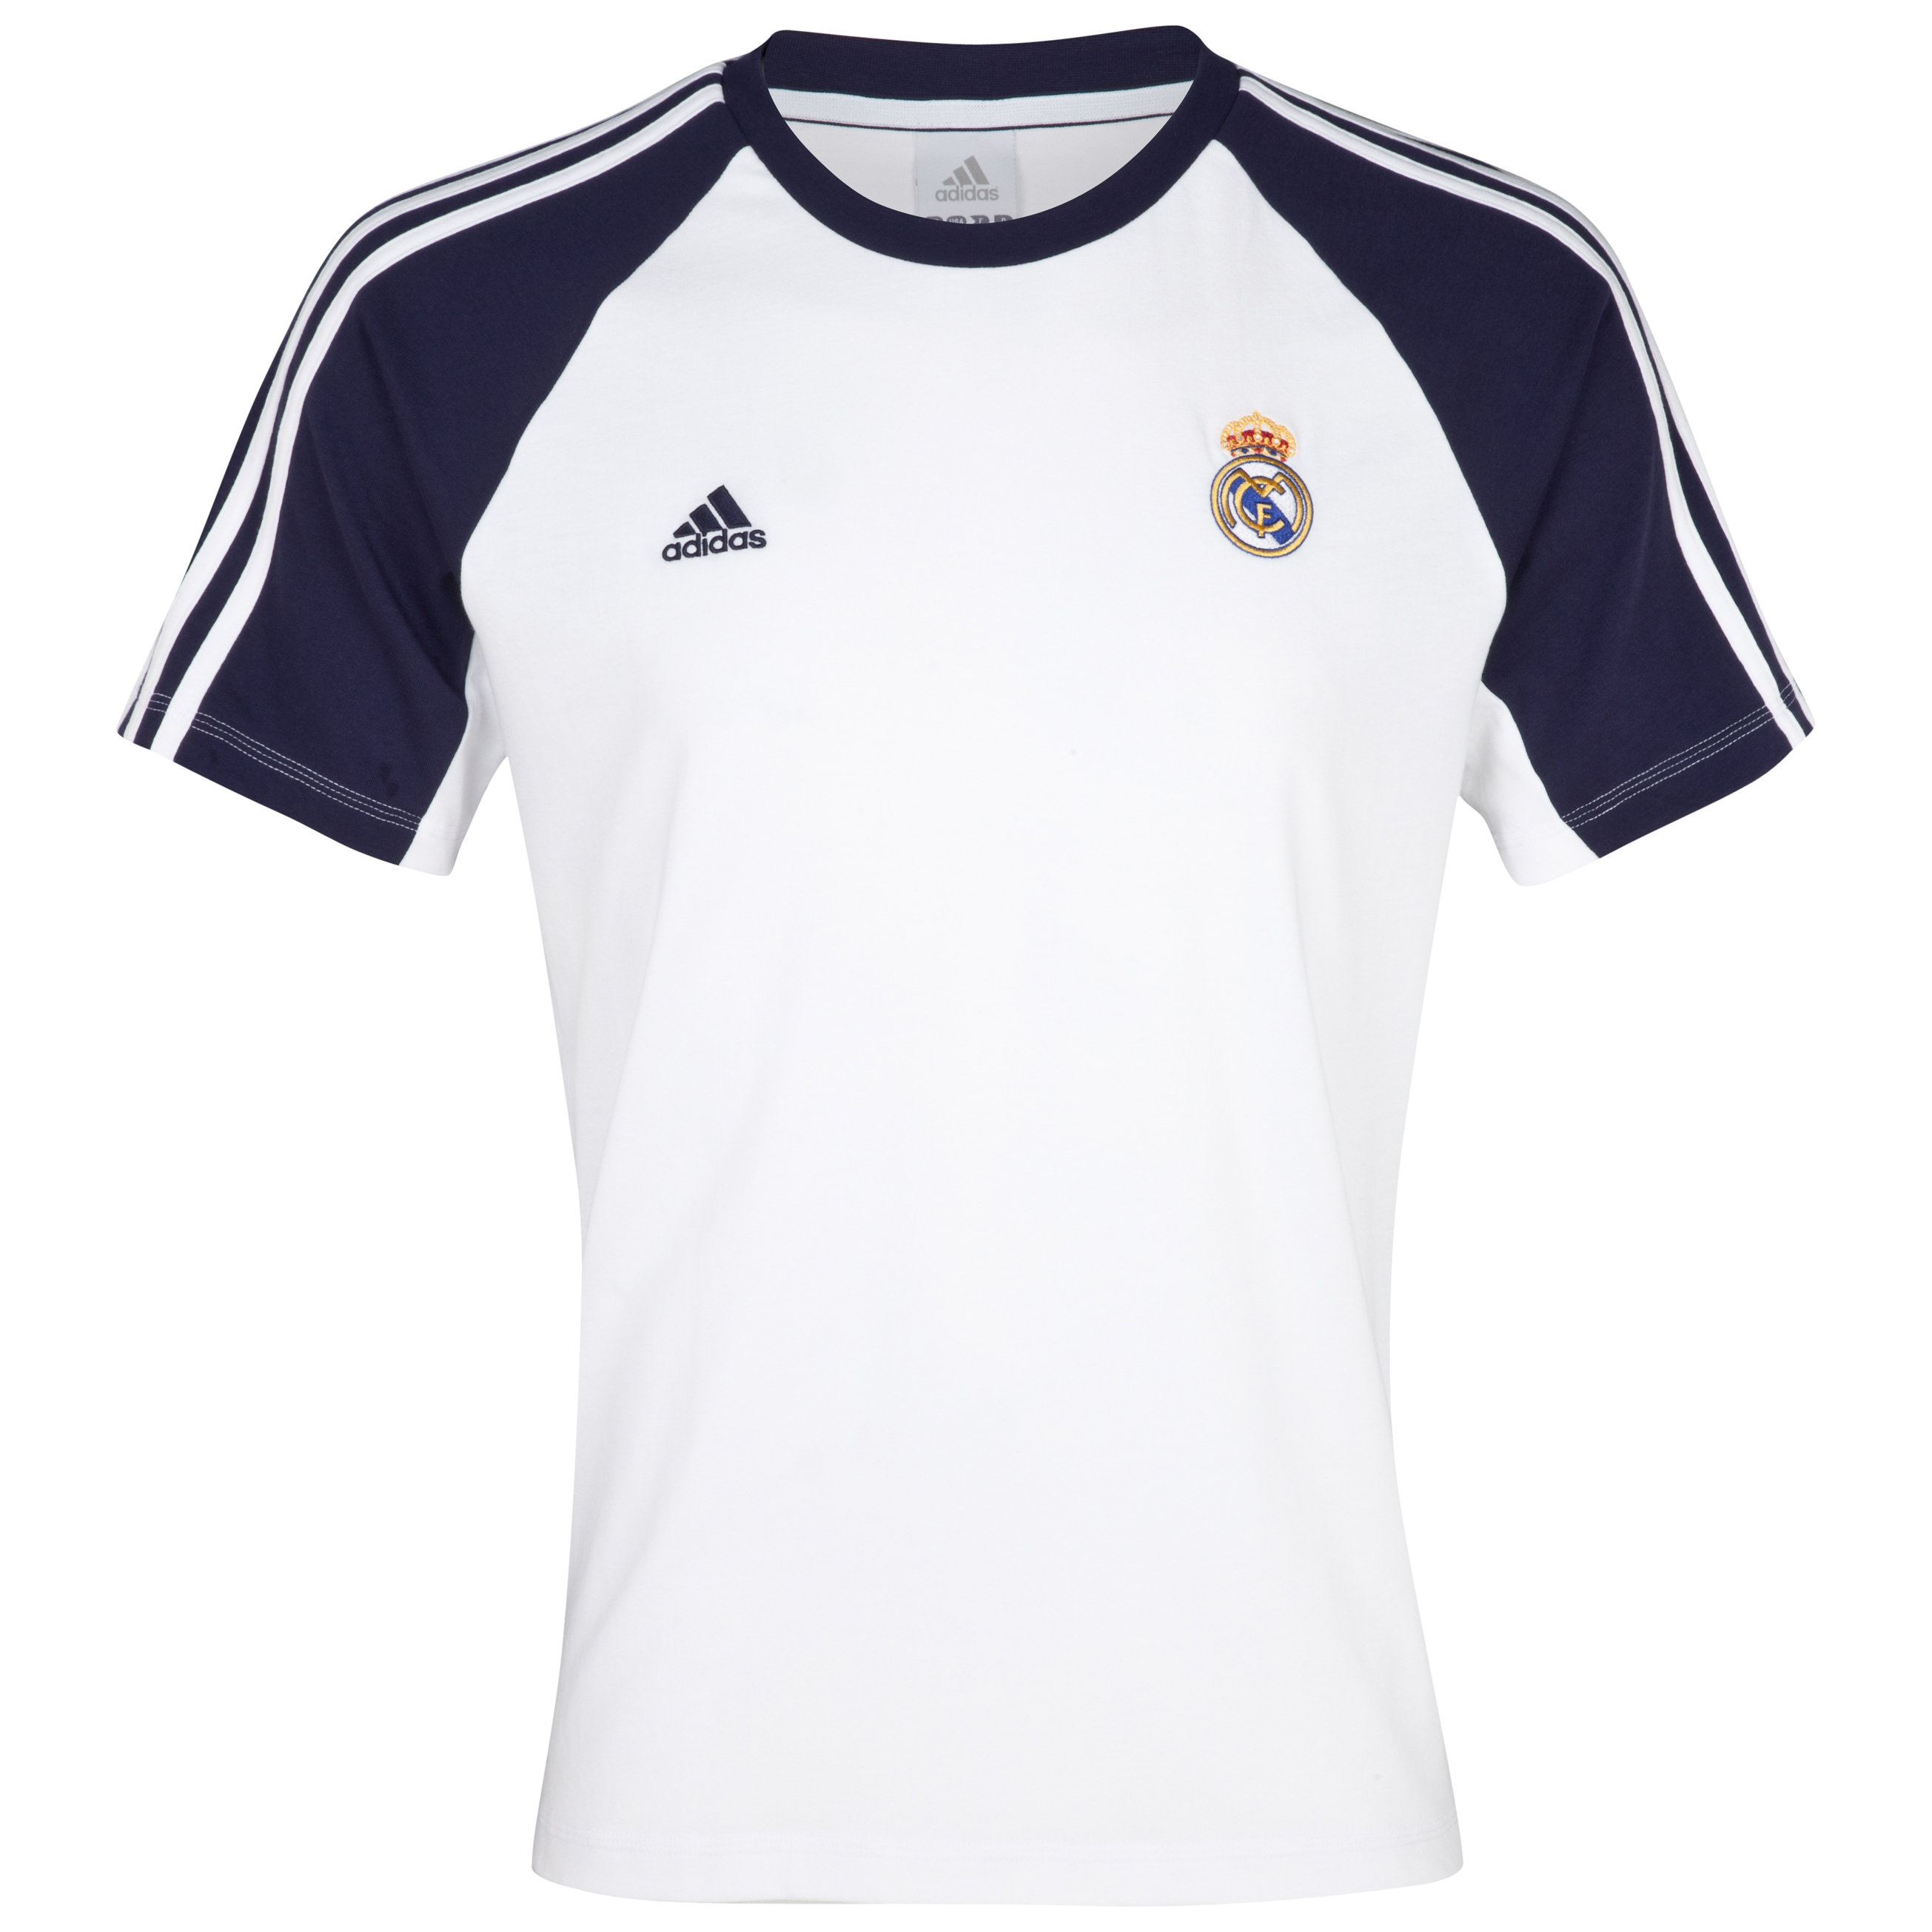 Camiseta Core Real Madrid - Blanco/negro